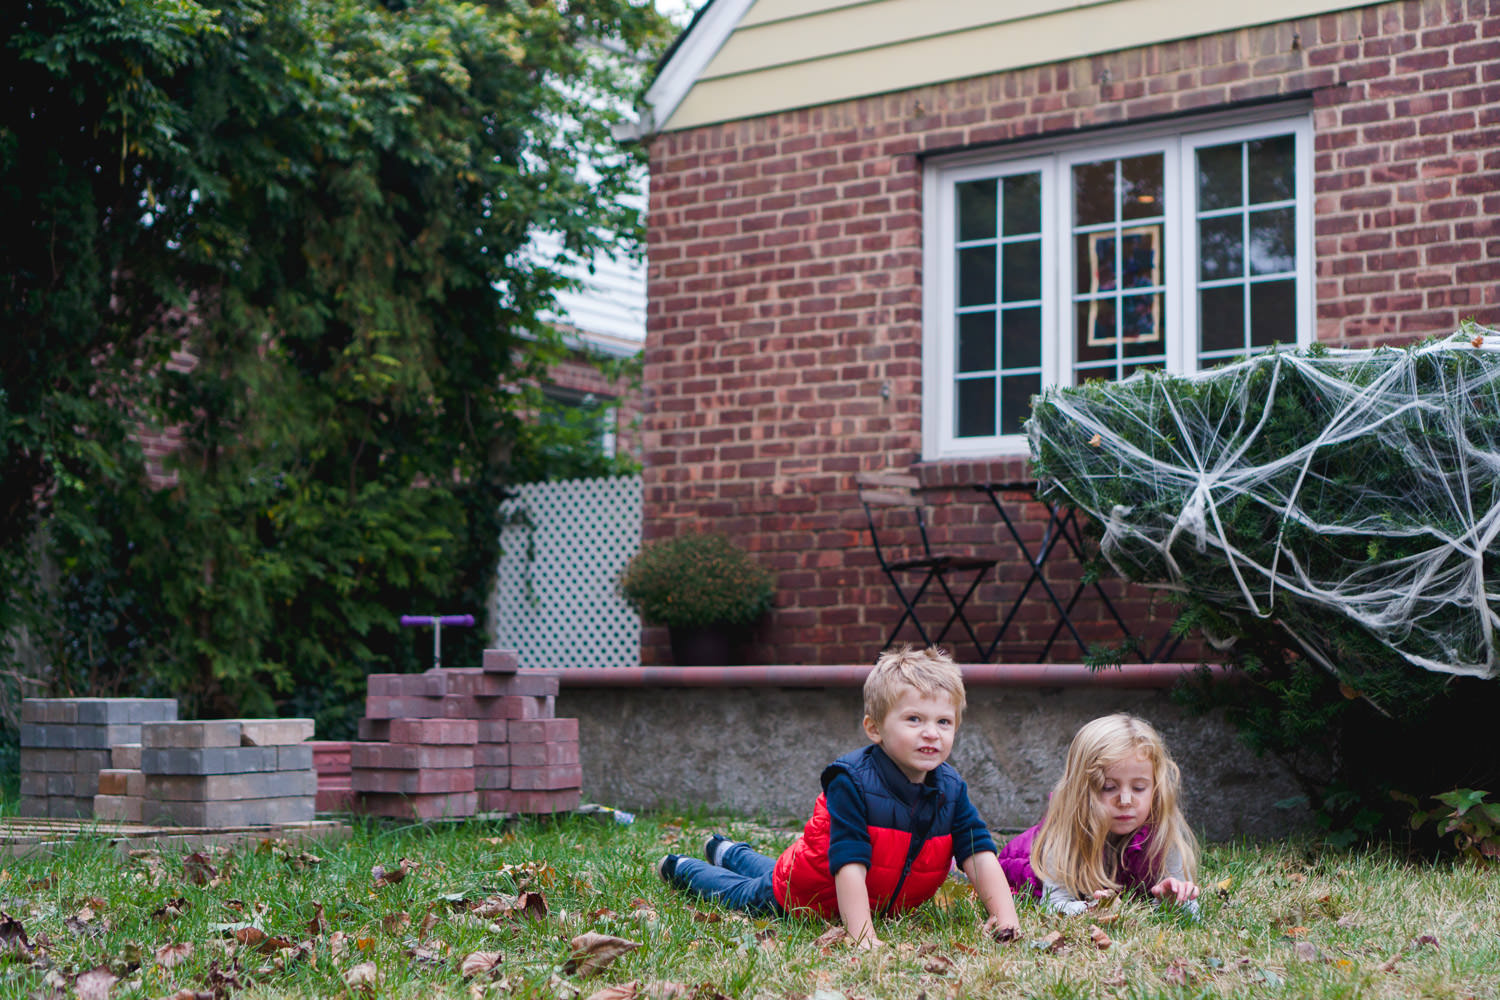 Two kids lie on their front lawn with a pile of bricks behind them.